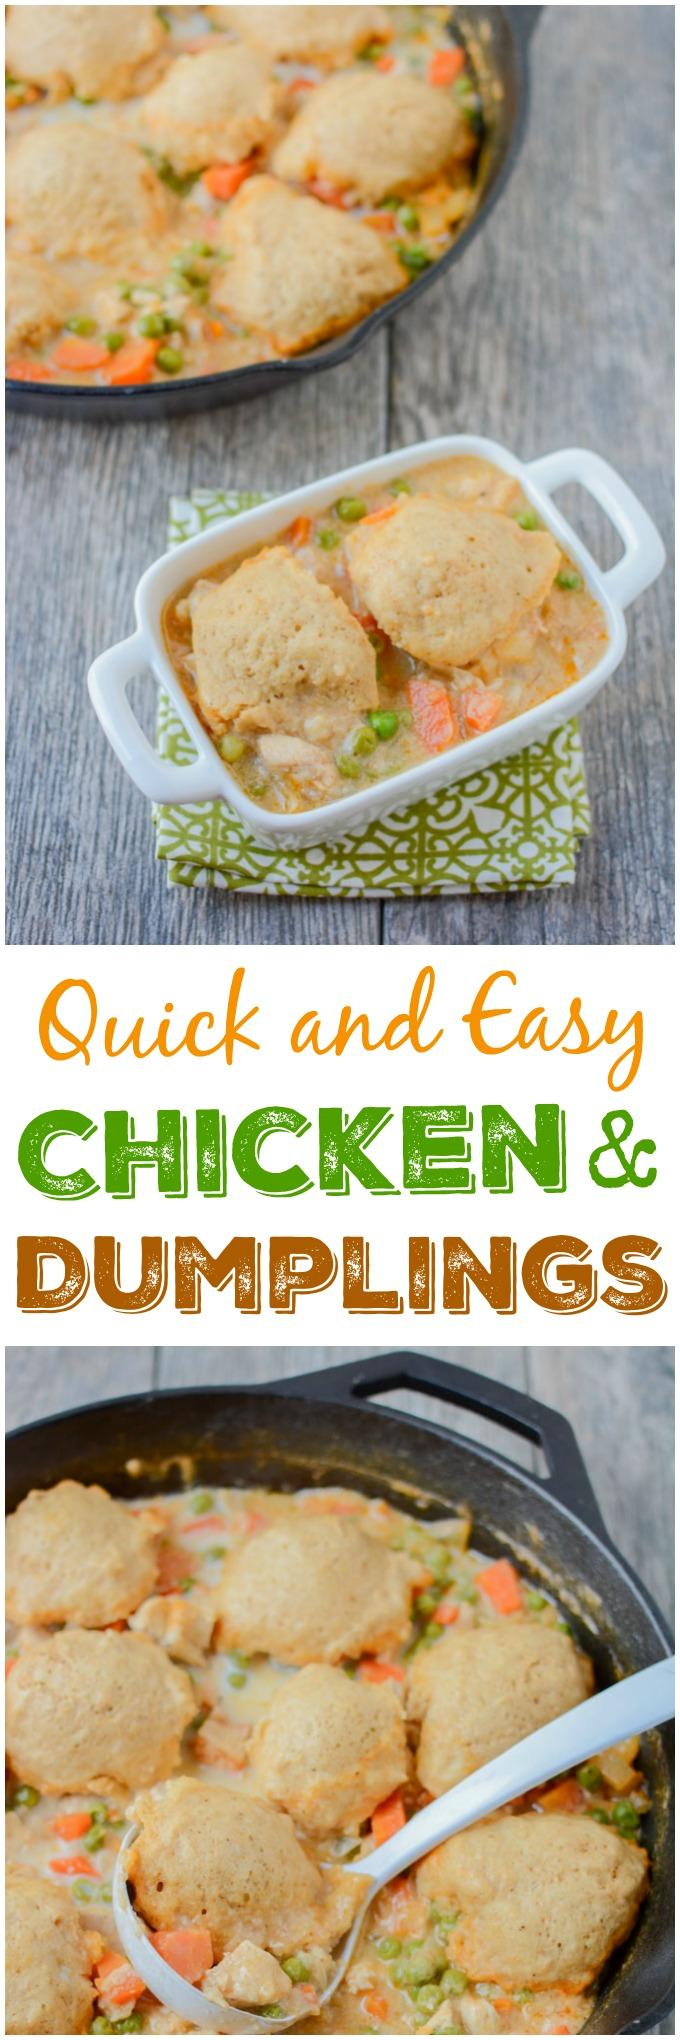 This recipe for Skillet Chicken and Dumplings makes an easy weeknight dinner. Ready in 30 minutes, it's healthy comfort food packed with protein and vegetables!